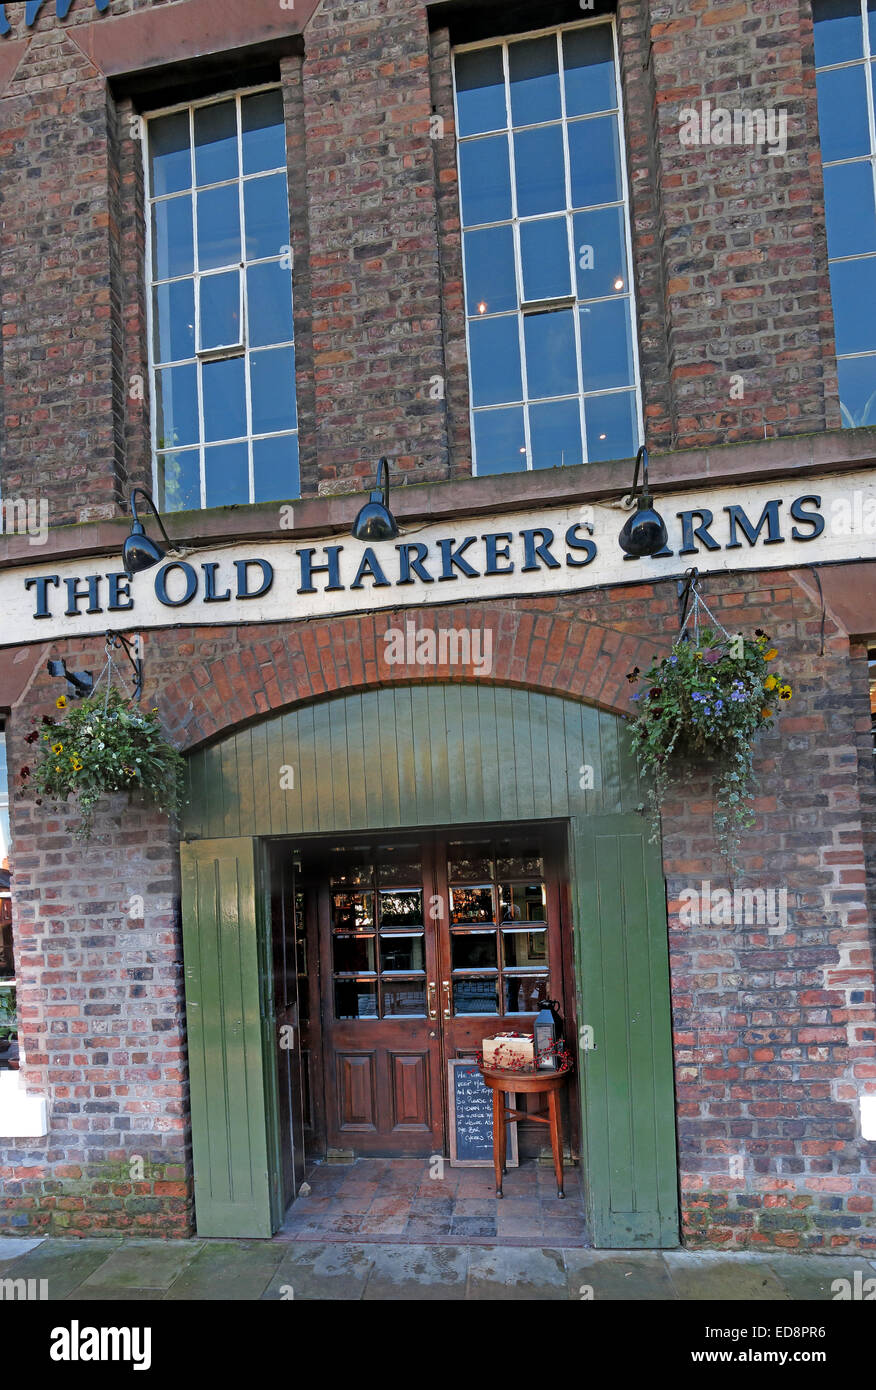 harker,England,UK,ale,camra,real,realale,real ale,converted warehouse,charm,charming,interesting,tourist,tourism,day,daytime The Old Harkers Arms,1 Russell Street,Chester,Cheshire,CH3 5AL,CH35AL,GoTonySmith,City Centre,City,Centre,@hotpixUK